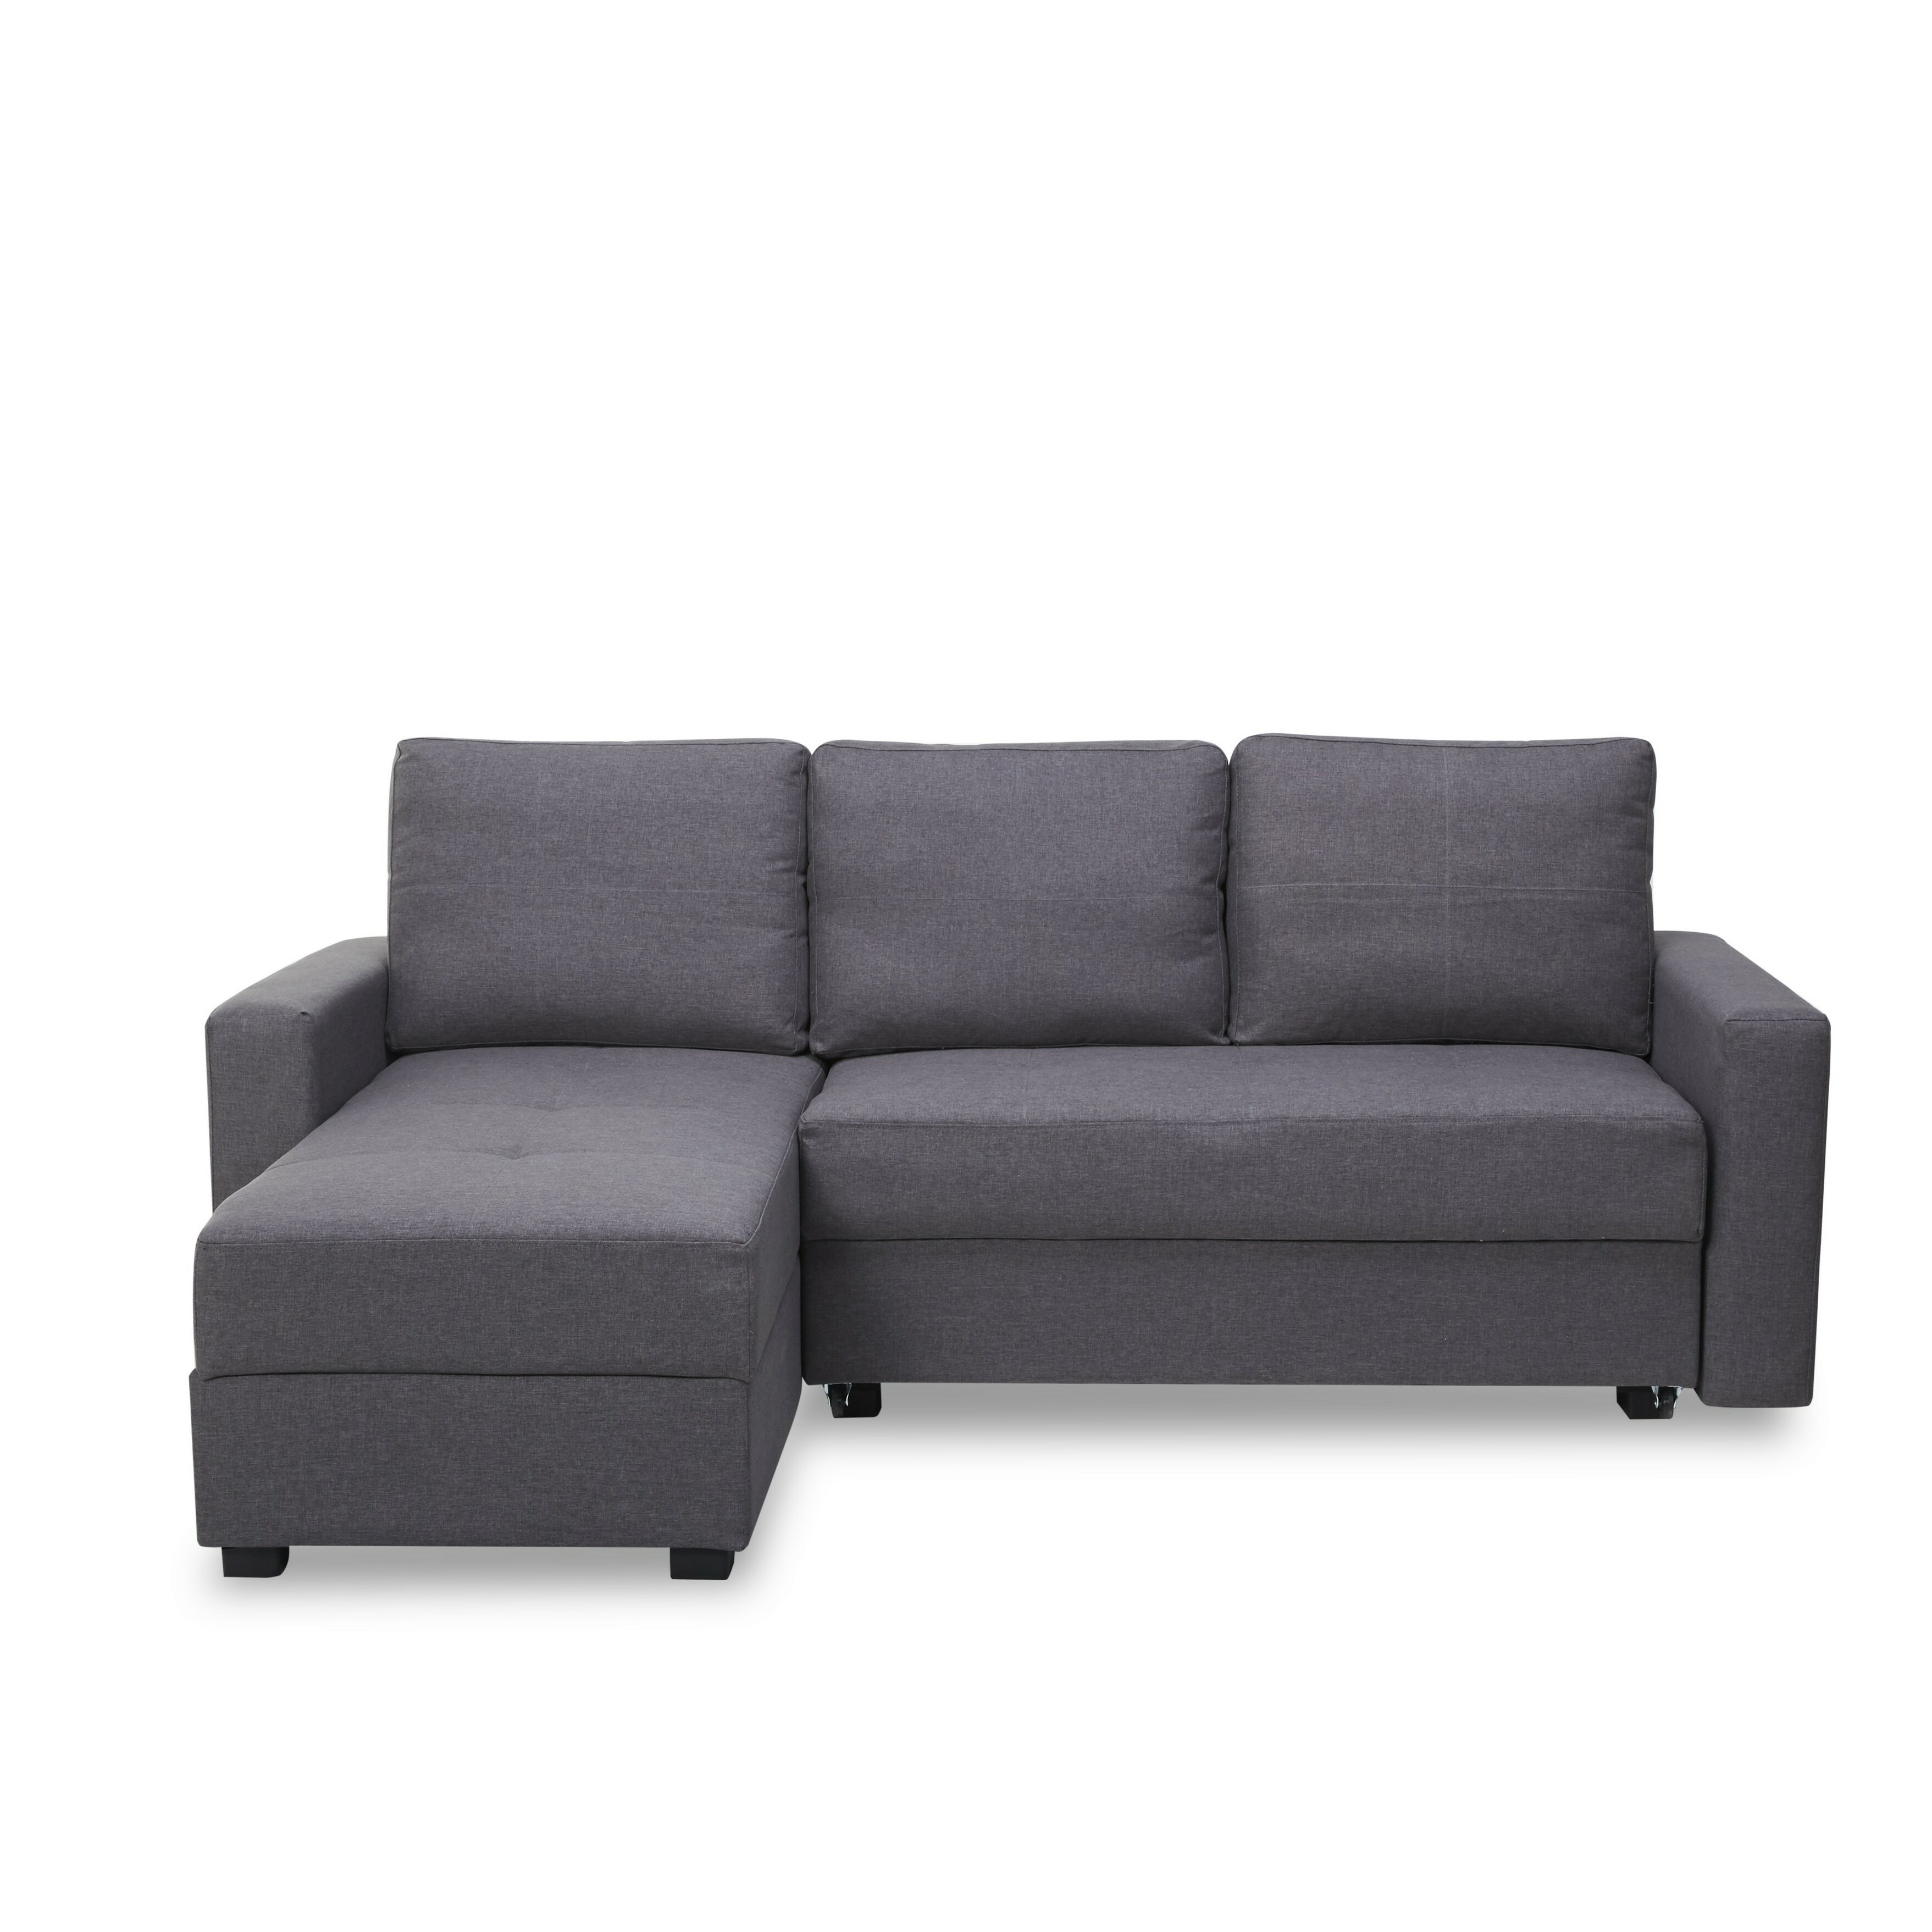 Leader Lifestyle Rian Reversible Chaise Corner Sofa Bed